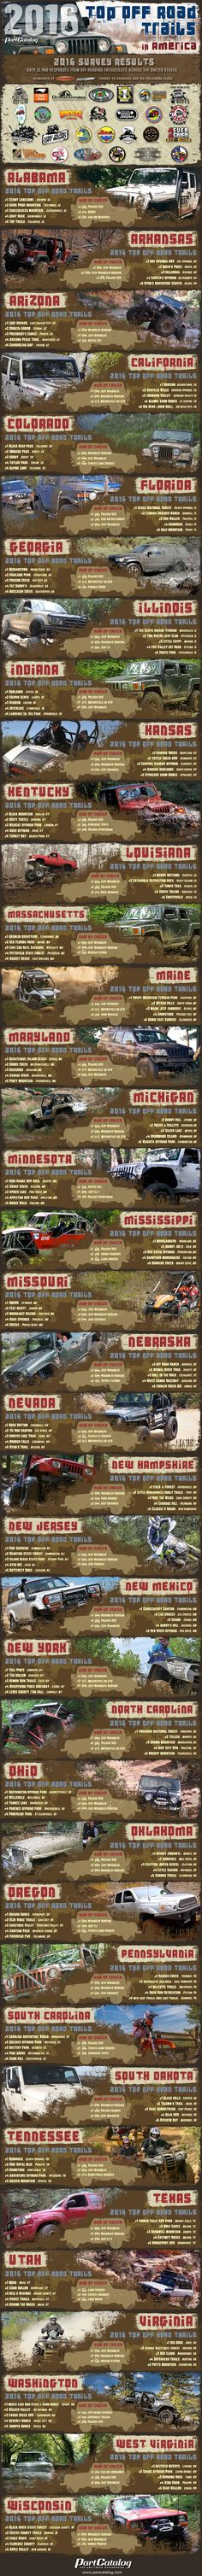 2016 Top Off Road Trails & Parks in America Jeep 4x4, Jeep Truck, Chevy Trucks, Hummer H3, Jeep Wrangler Tj, Jeep Wrangler Unlimited, Jeep Rubicon, Jeep Trails, Jeep Mods